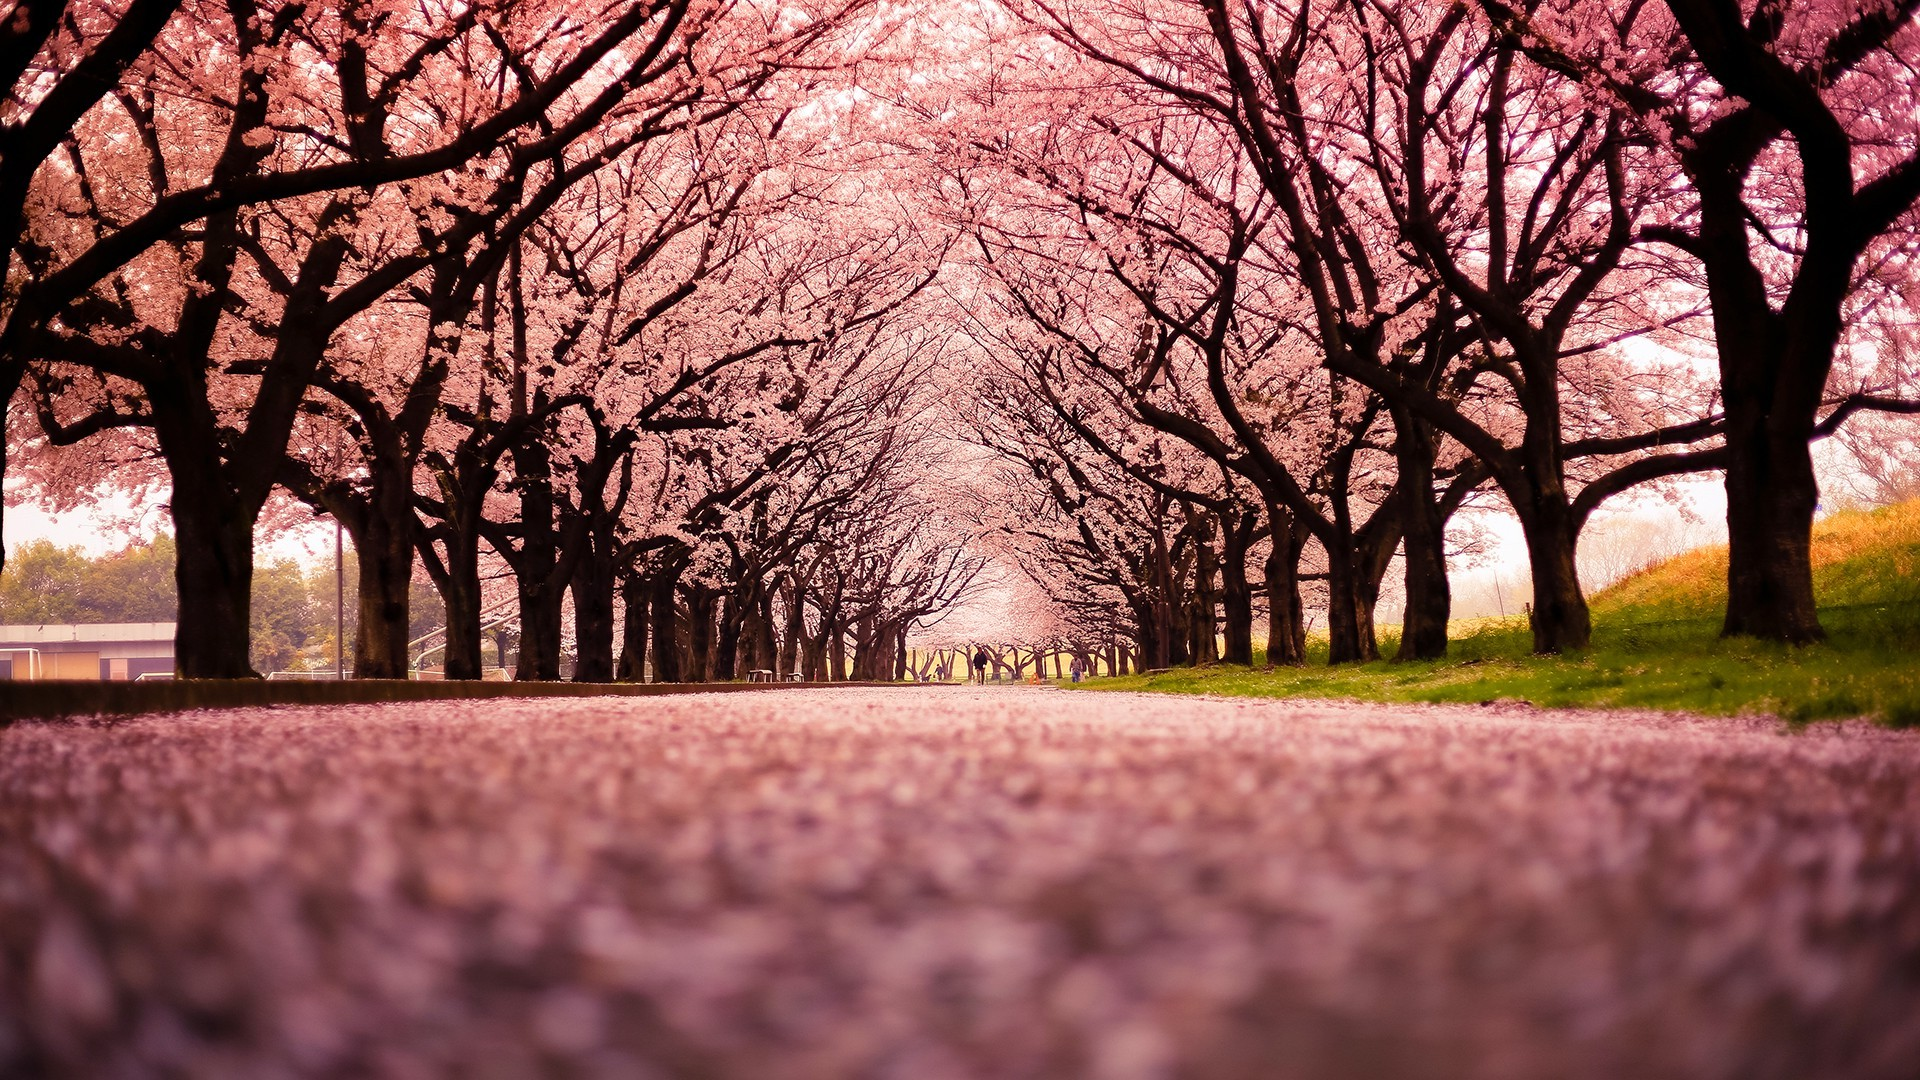 1600x900 Wallpapers Hd Cars Landscape Cherry Blossom Trees Path Nature Wallpapers